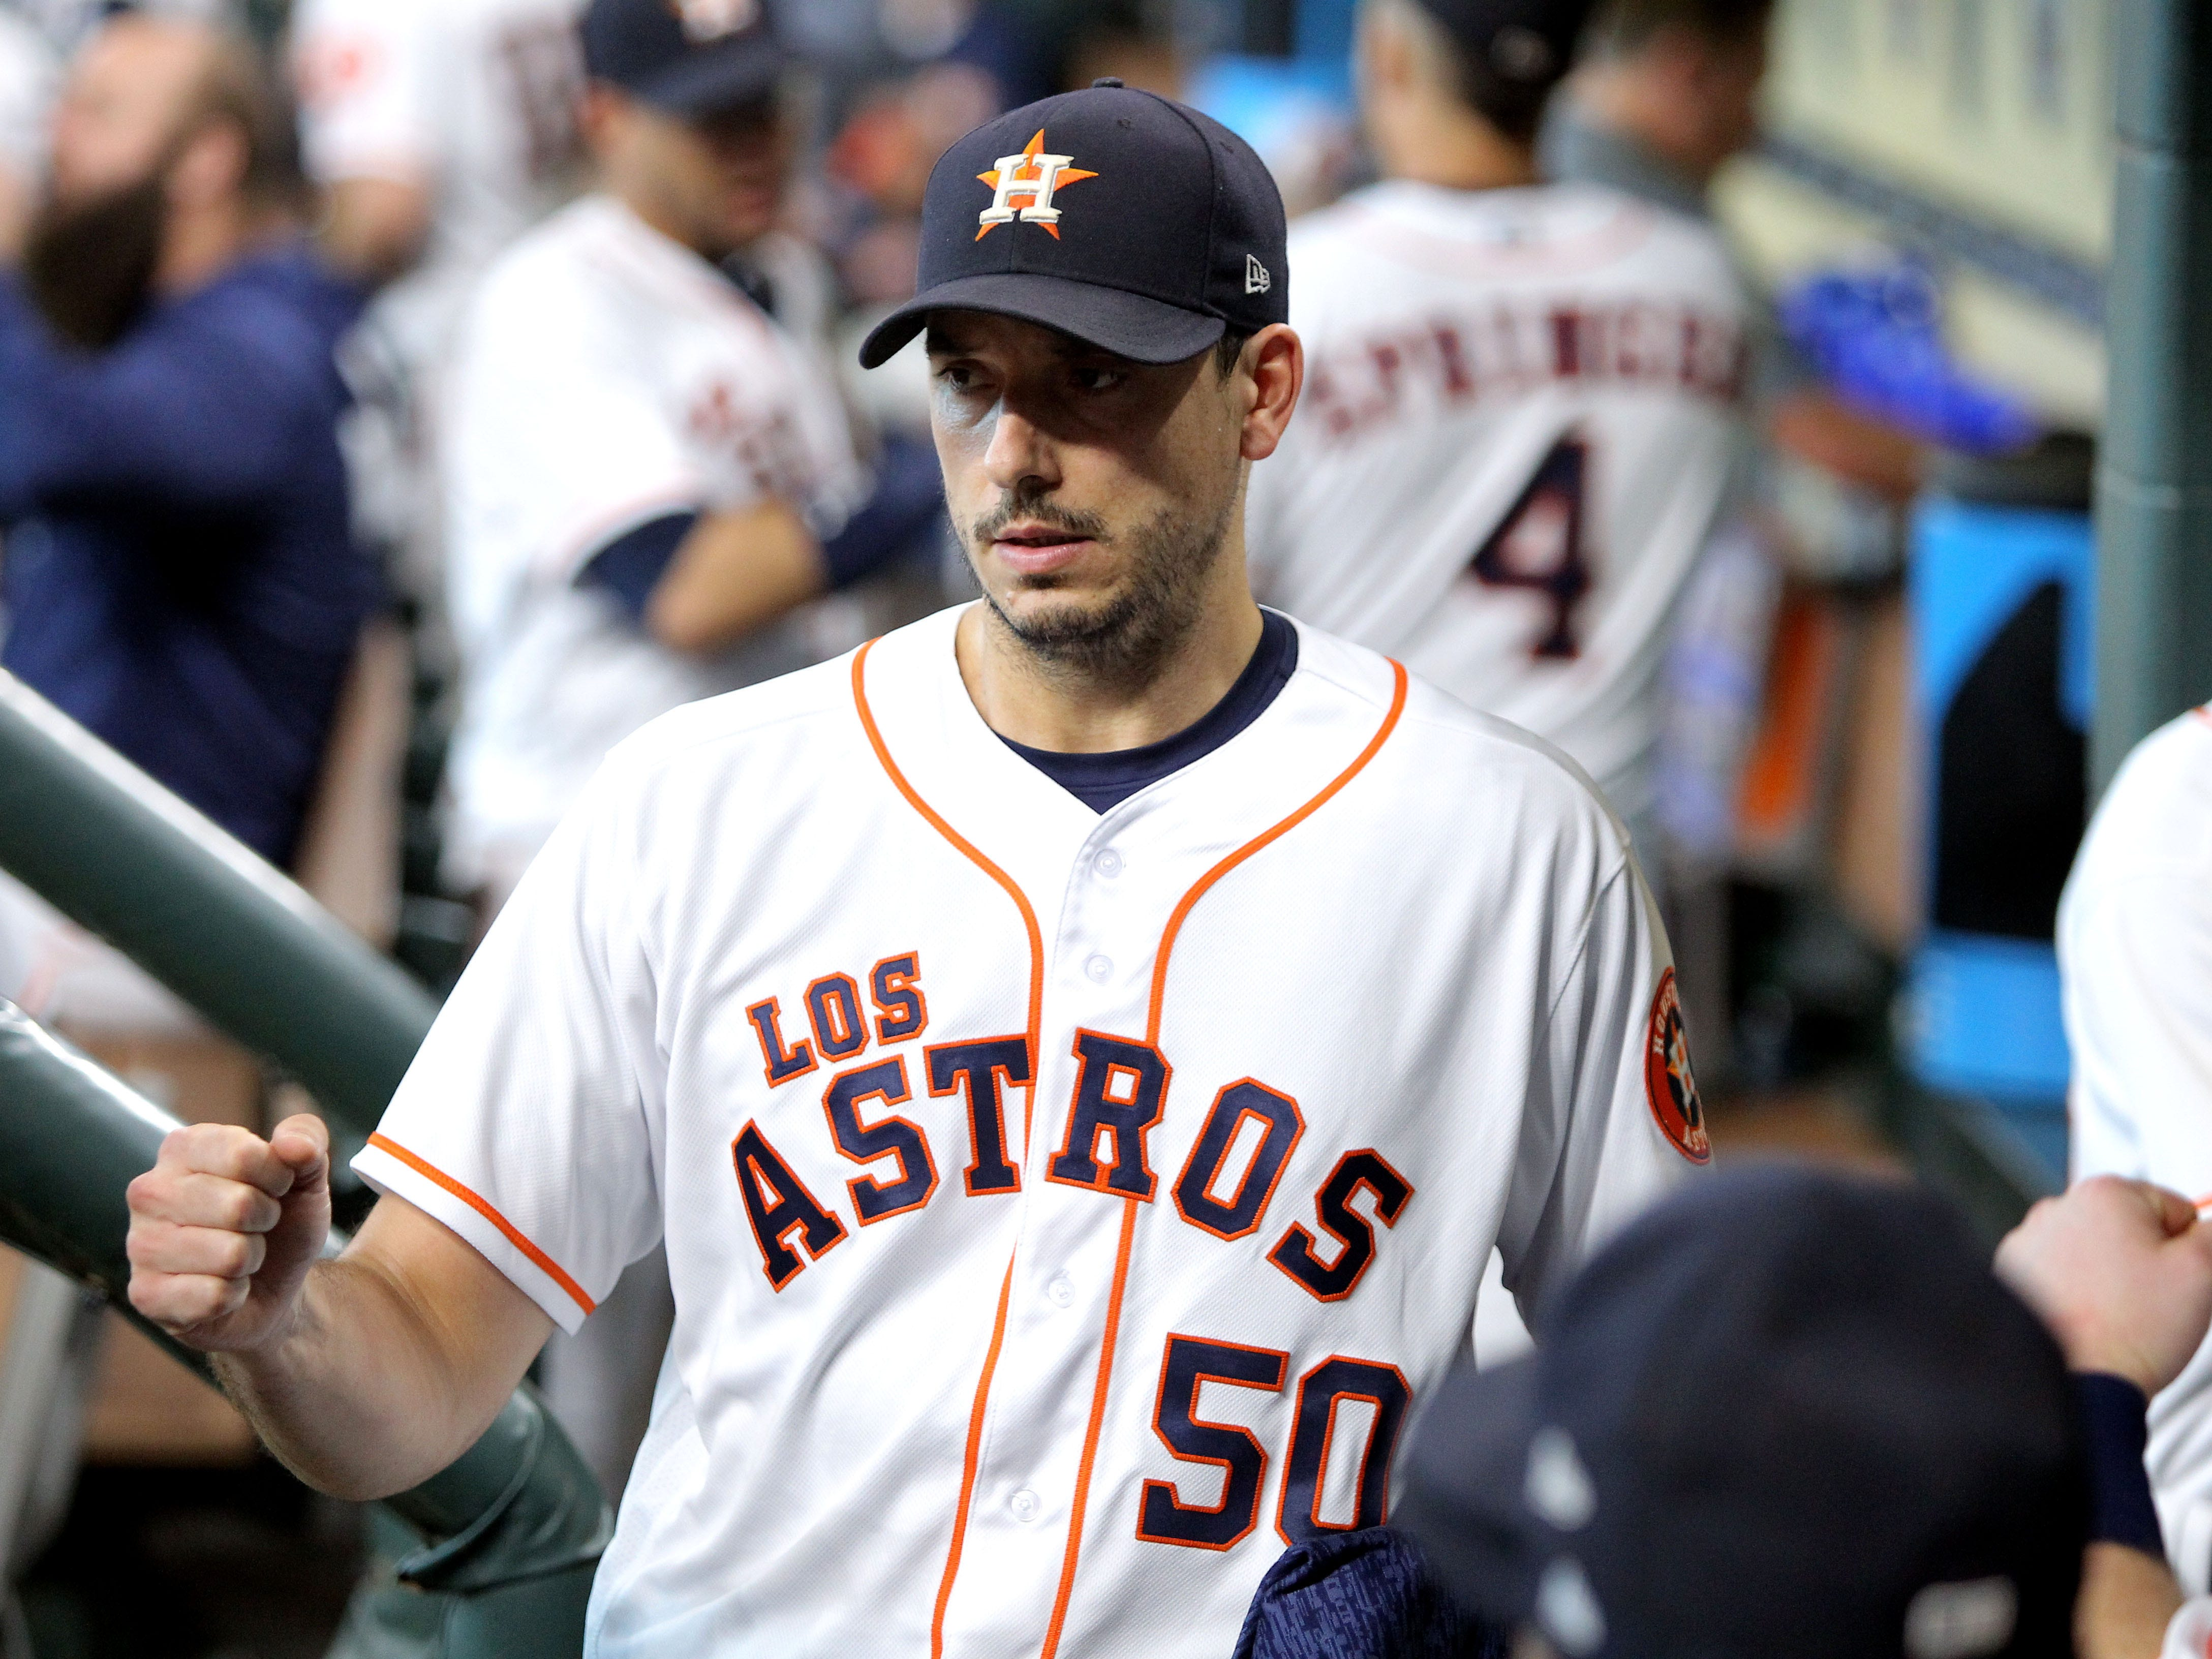 Sep 15, 2018; Houston, TX, USA; Houston Astros starting pitcher Charlie Morton (50) in the dugout prior to the game against the Arizona Diamondbacks at Minute Maid Park. Mandatory Credit: Erik Williams-USA TODAY Sports